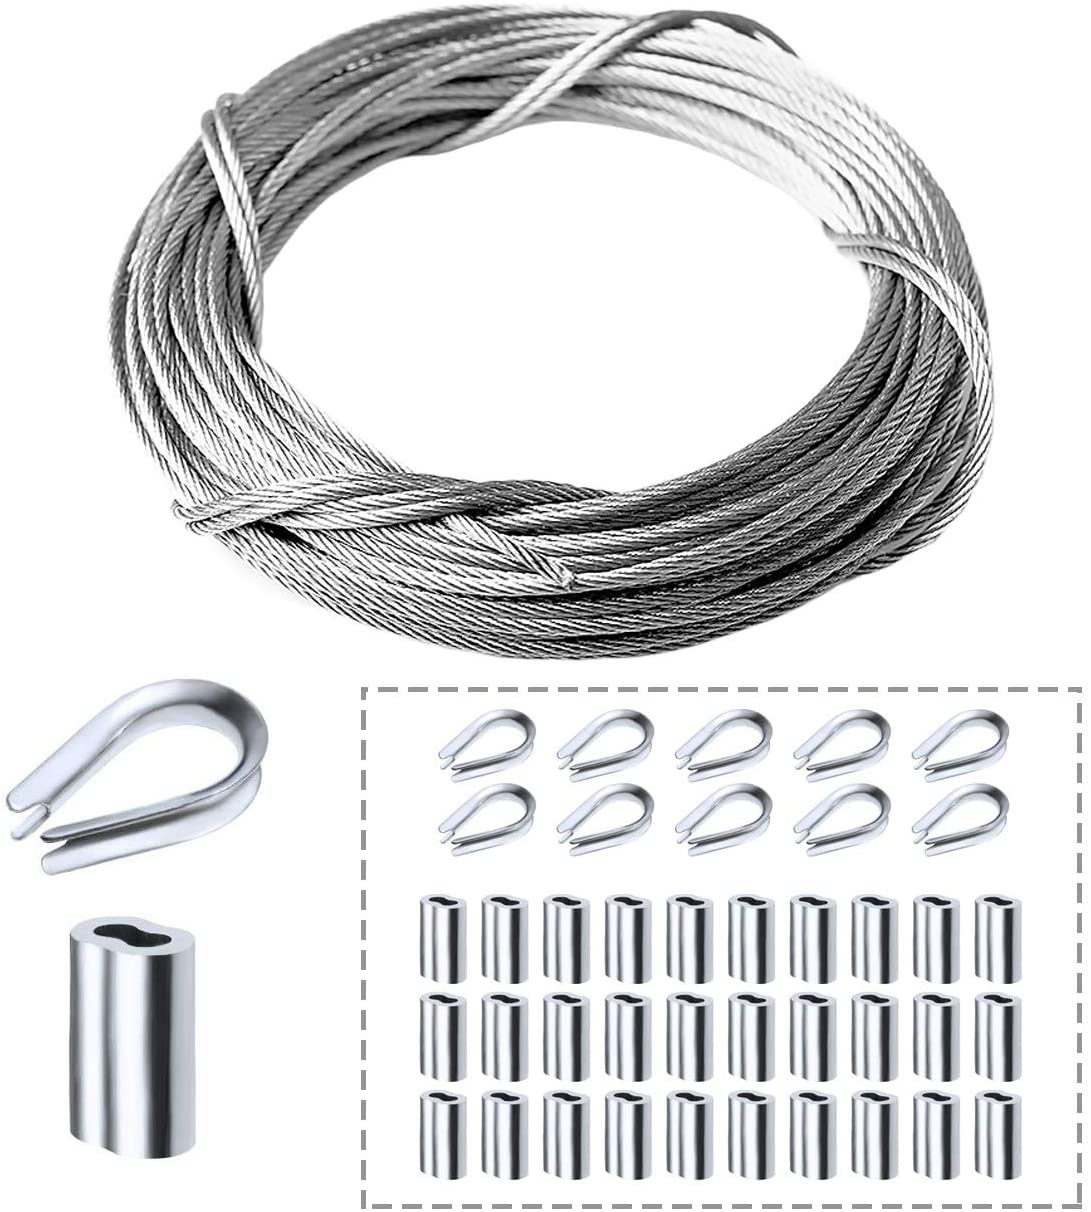 Amadget Stainless Steel Wire Rope, 316 Marine Grade Cable Railing Kit, Aircraft Wire Rope & Picture Hanging Kit for Railing, Decking, DIY Balustrade, Boat Marine Hardware (1/8